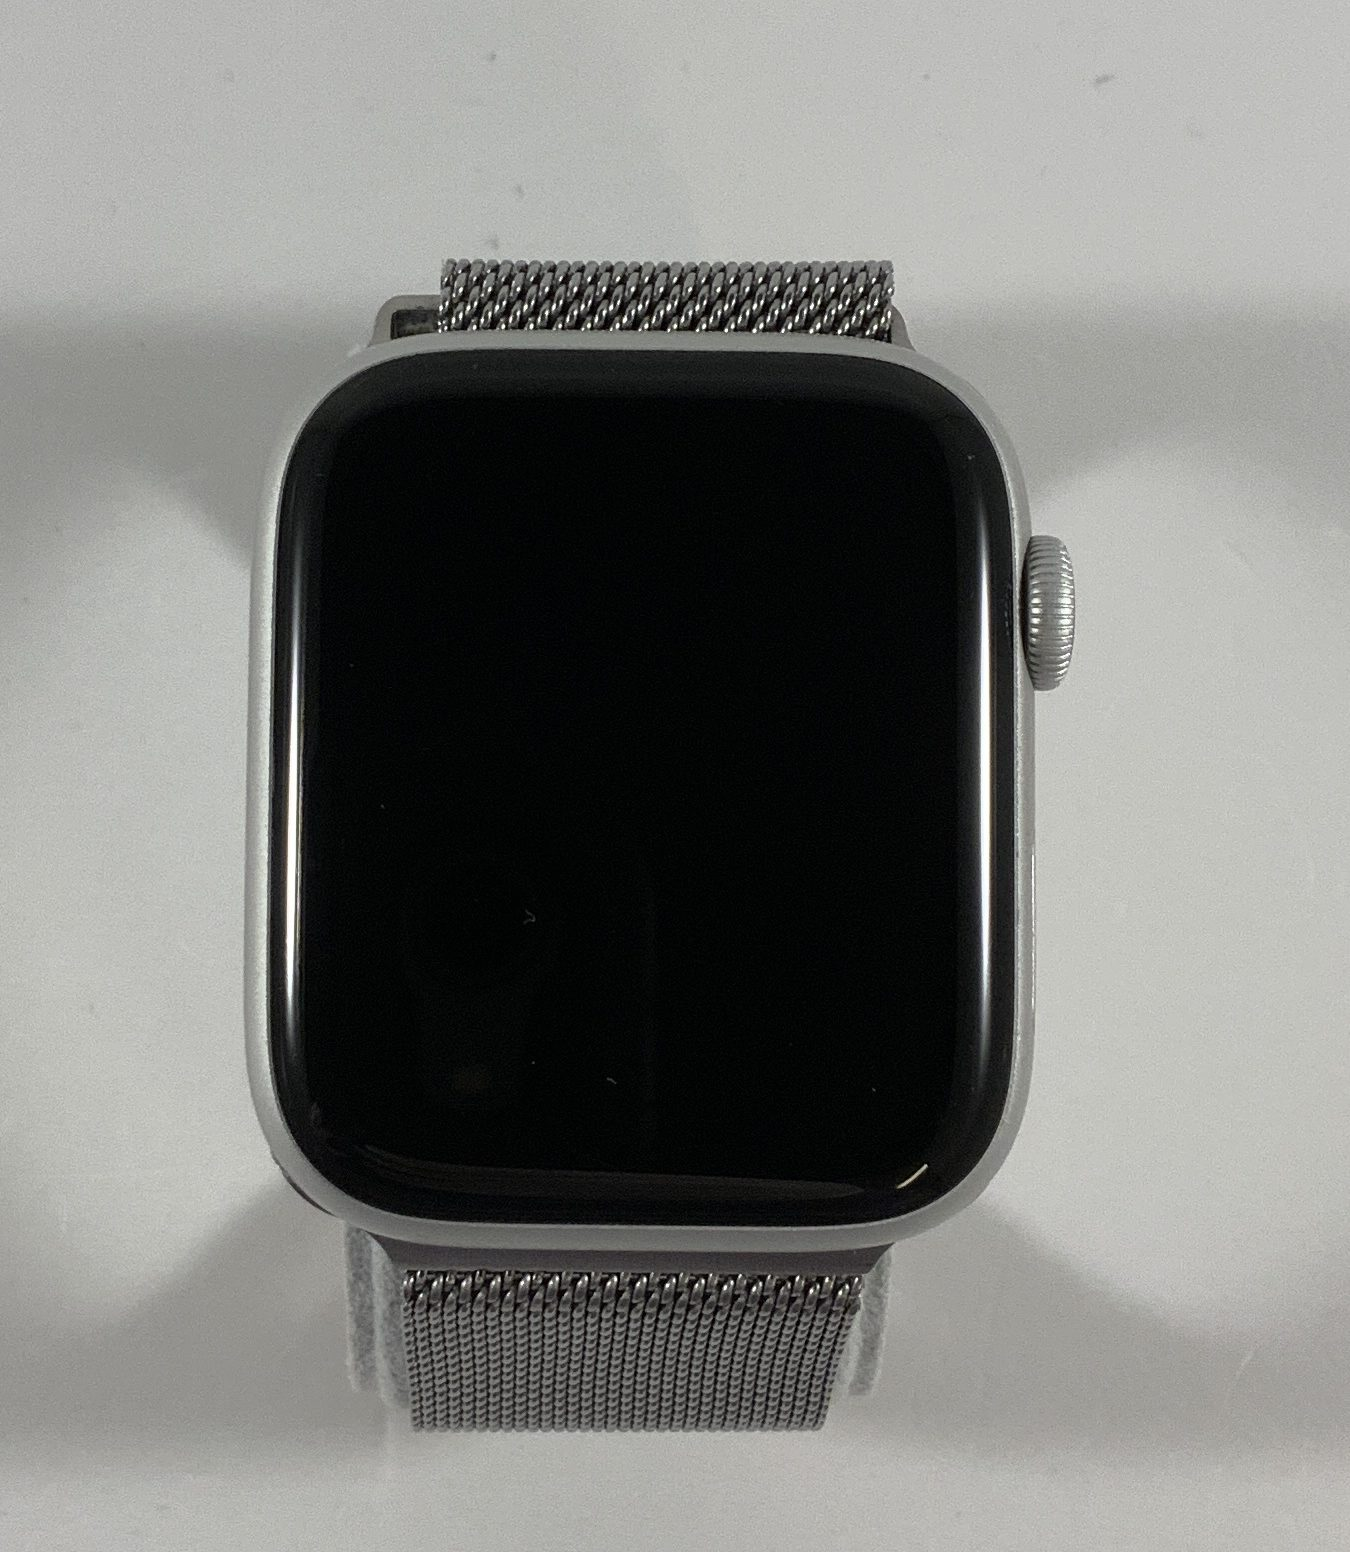 Watch Series 5 Aluminum (44mm), Silver, image 3